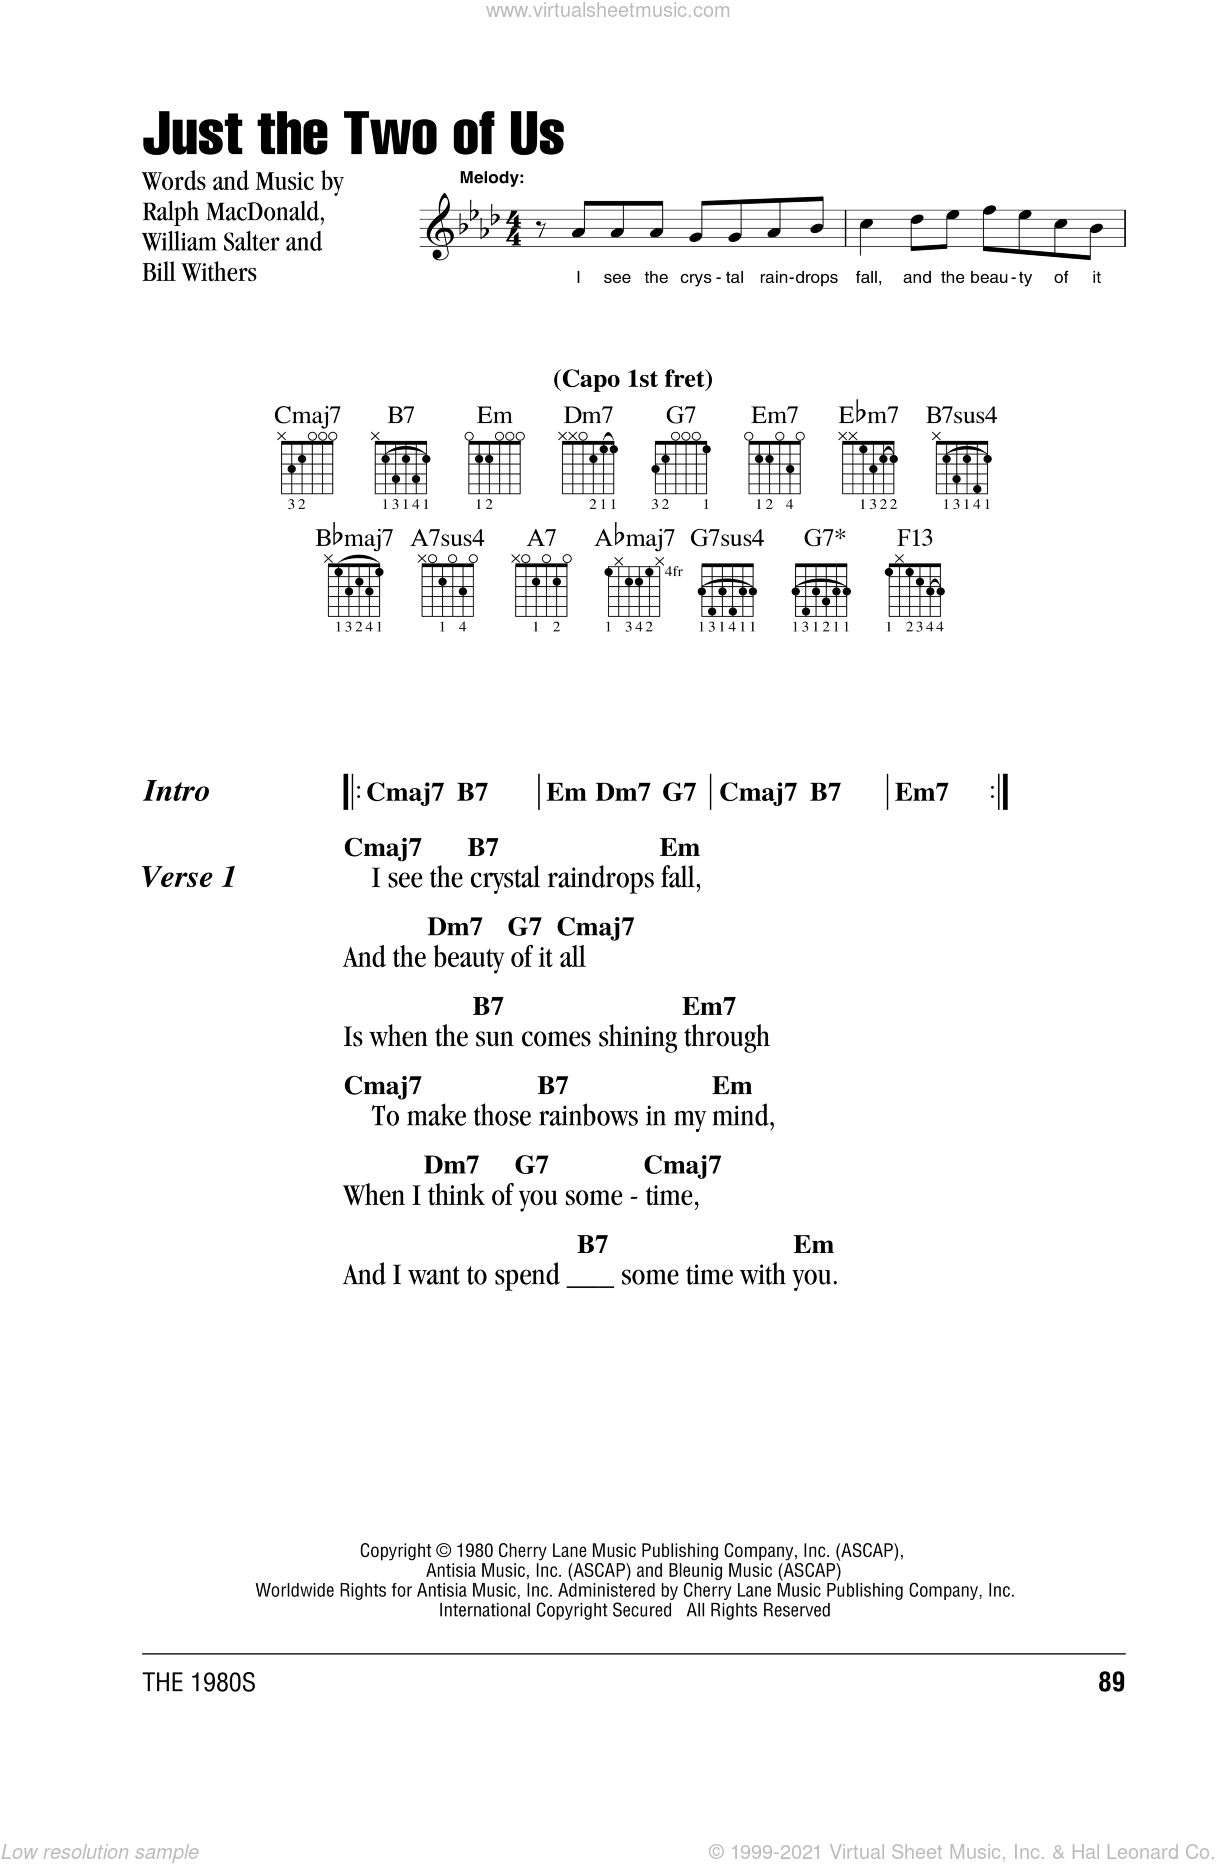 Just The Two Of Us sheet music for guitar (chords, lyrics, melody) by William Salter